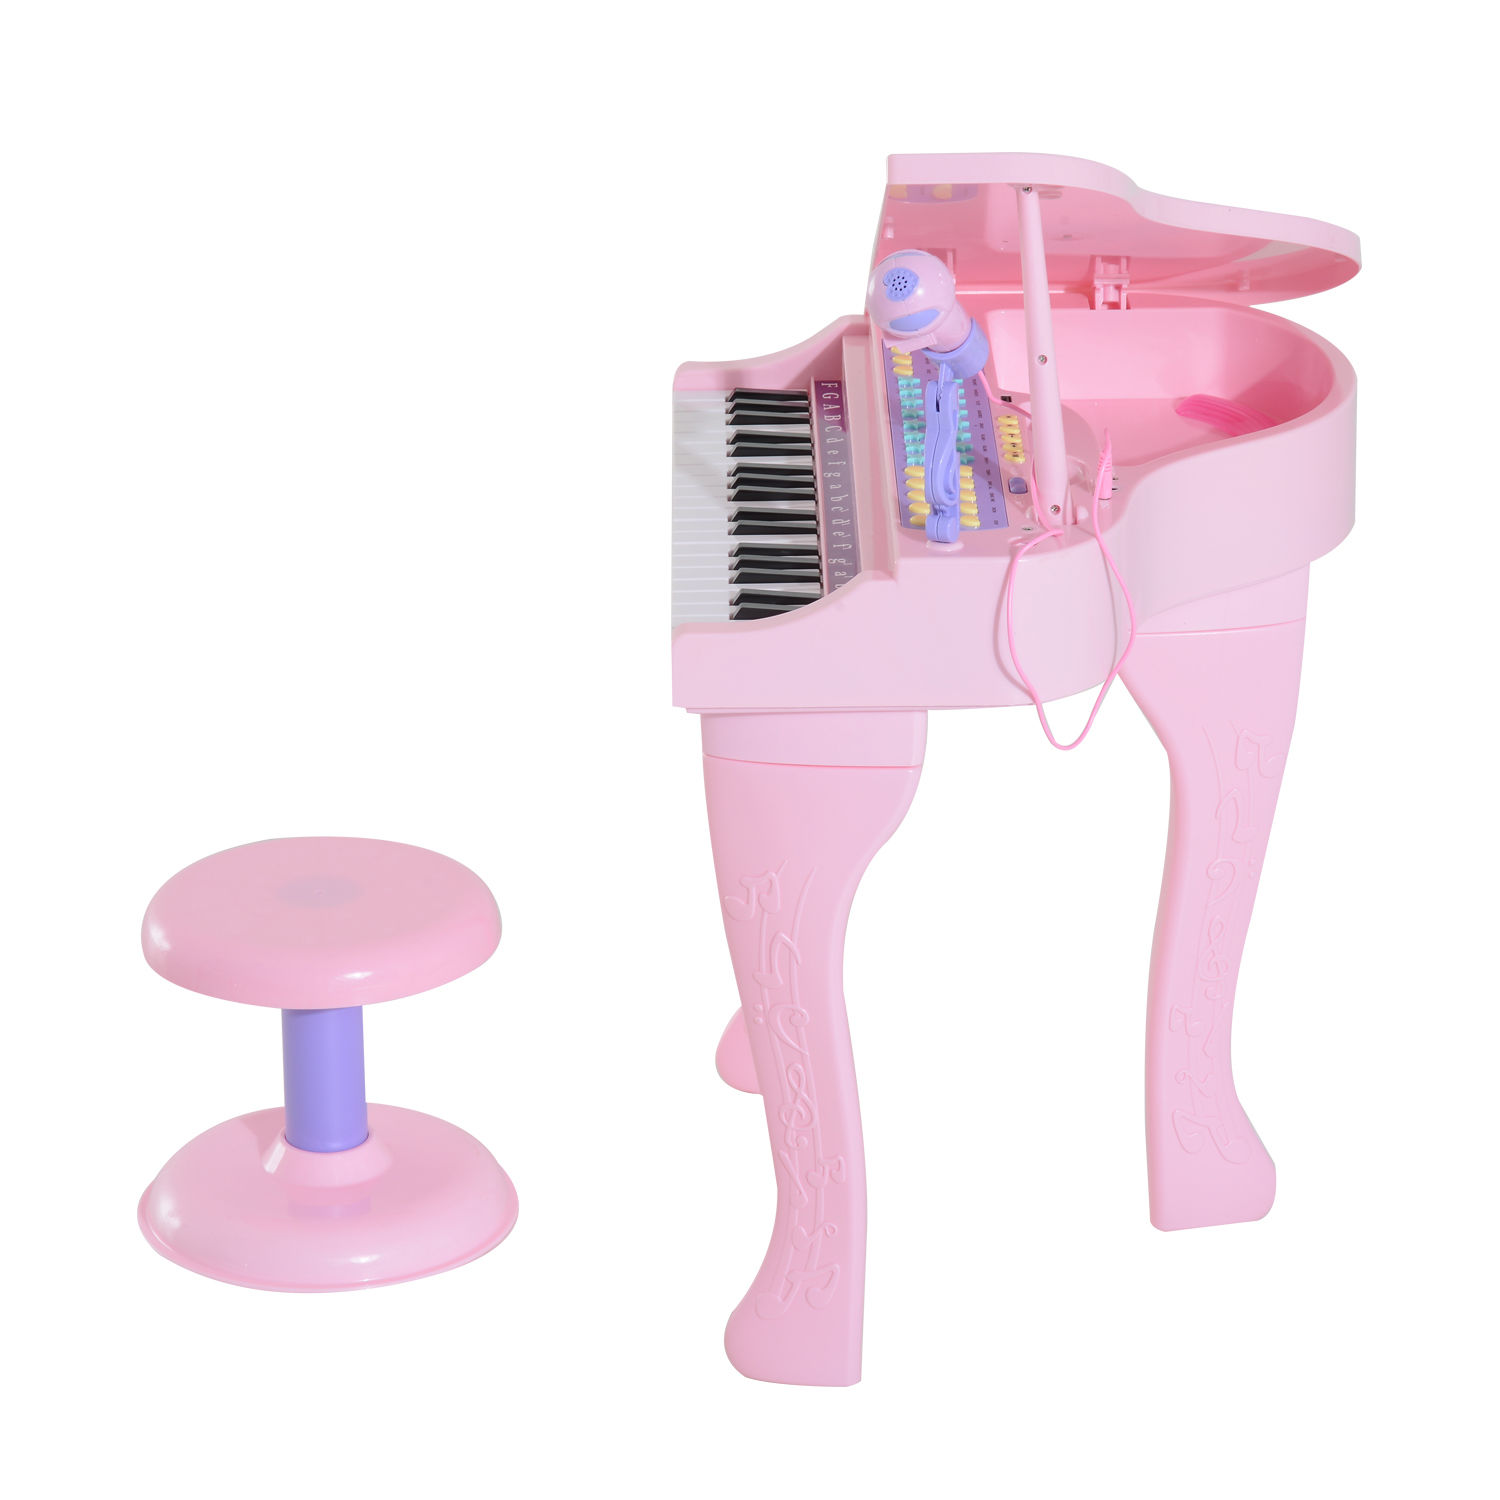 37-32-Key-Kids-Electronic-Keyboard-Mini-Grand-Piano-Stool-Microphone-Musical-Toy thumbnail 16